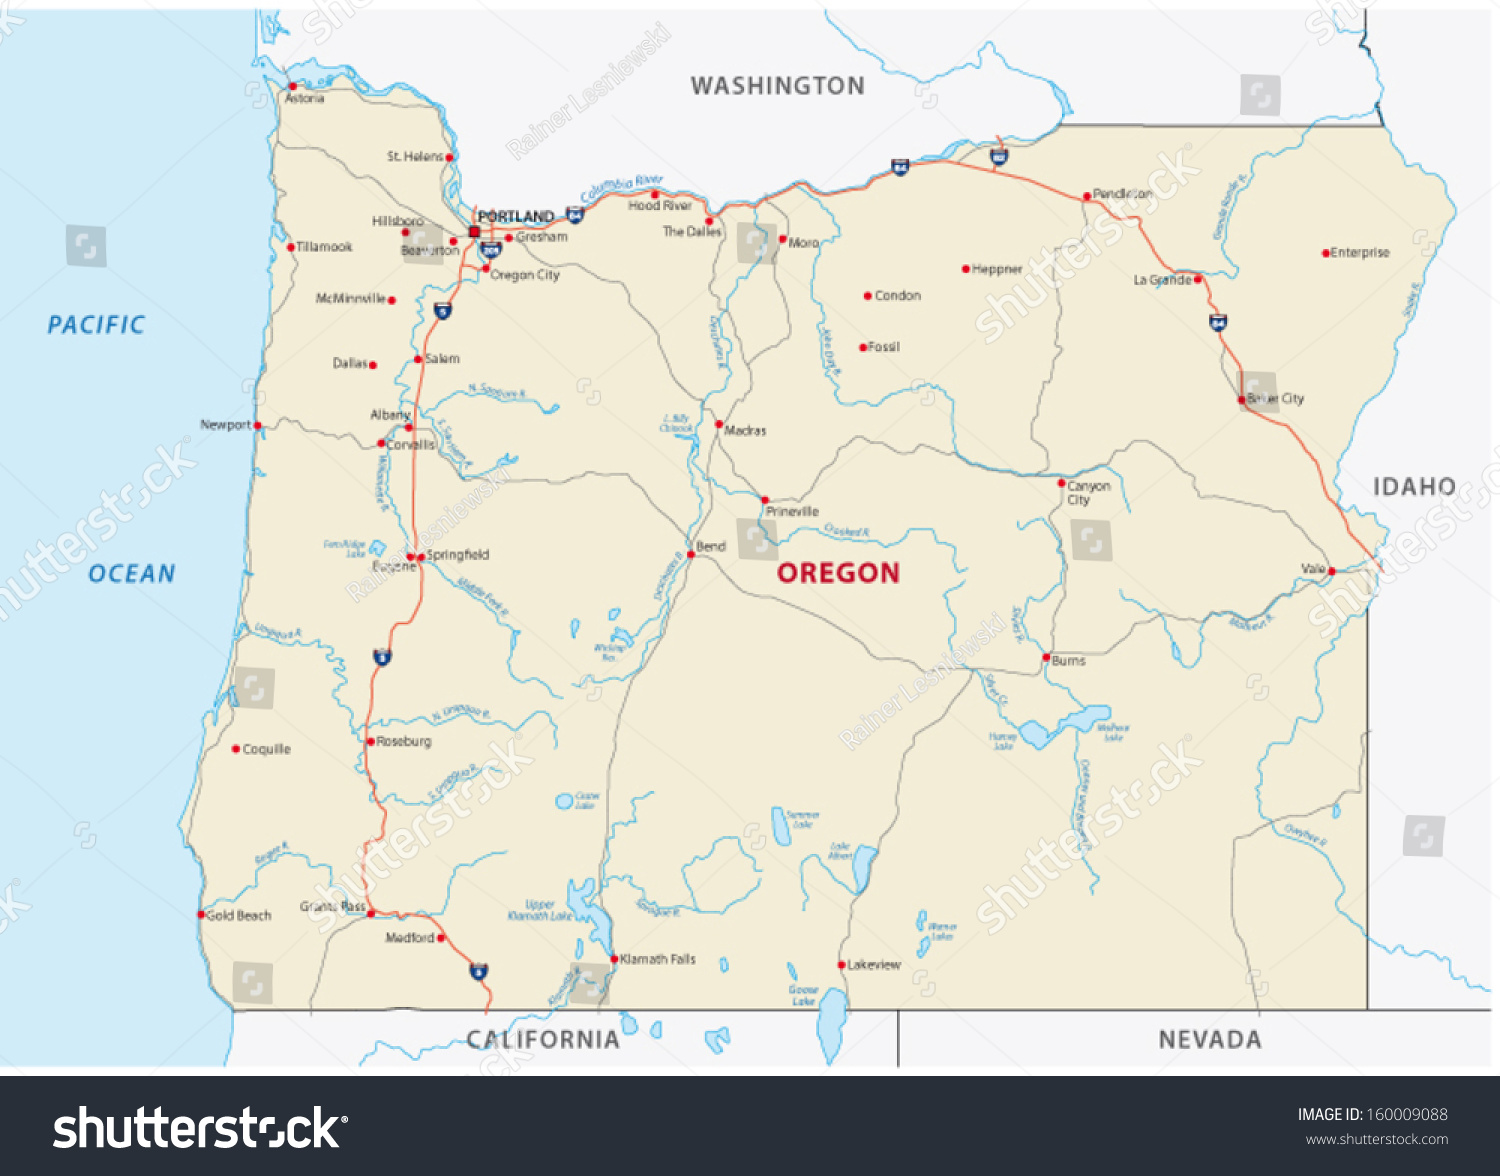 Road Map Of Oregon Tibet Map - Oregon road maps